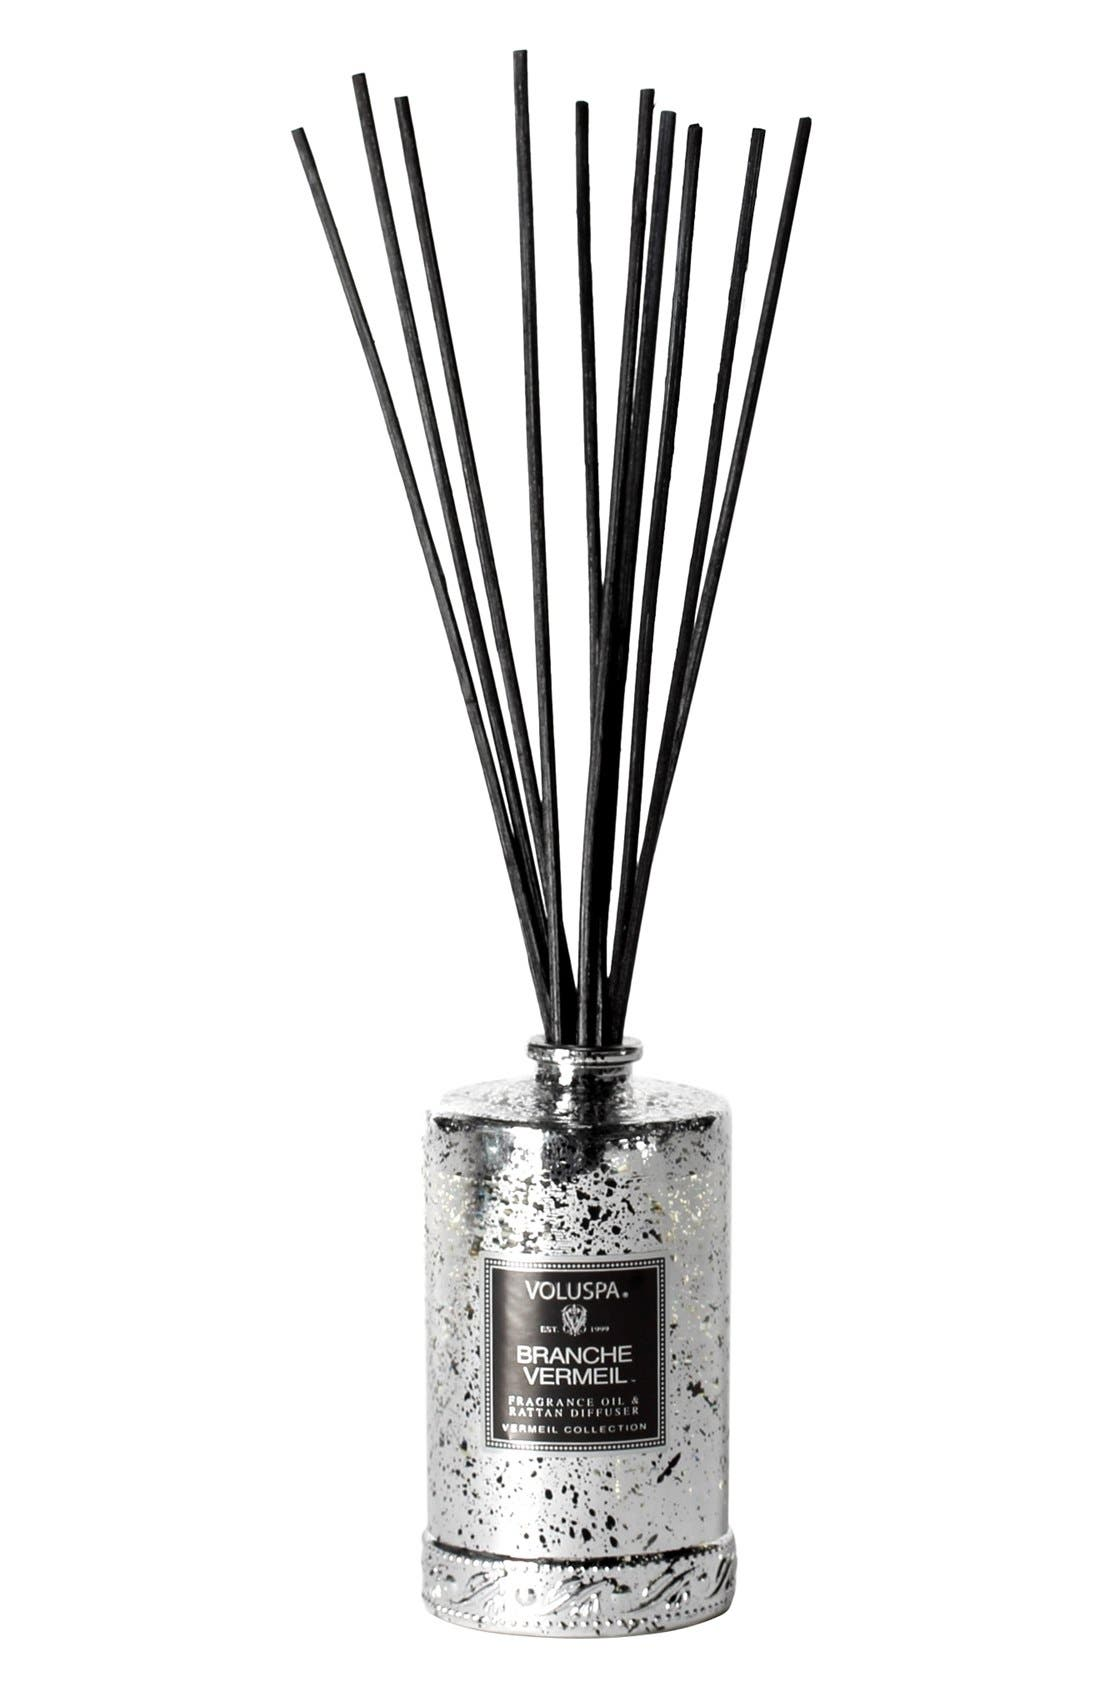 Alternate Image 1 Selected - Voluspa 'Vermeil - Branche Vermeil' Reed Diffuser